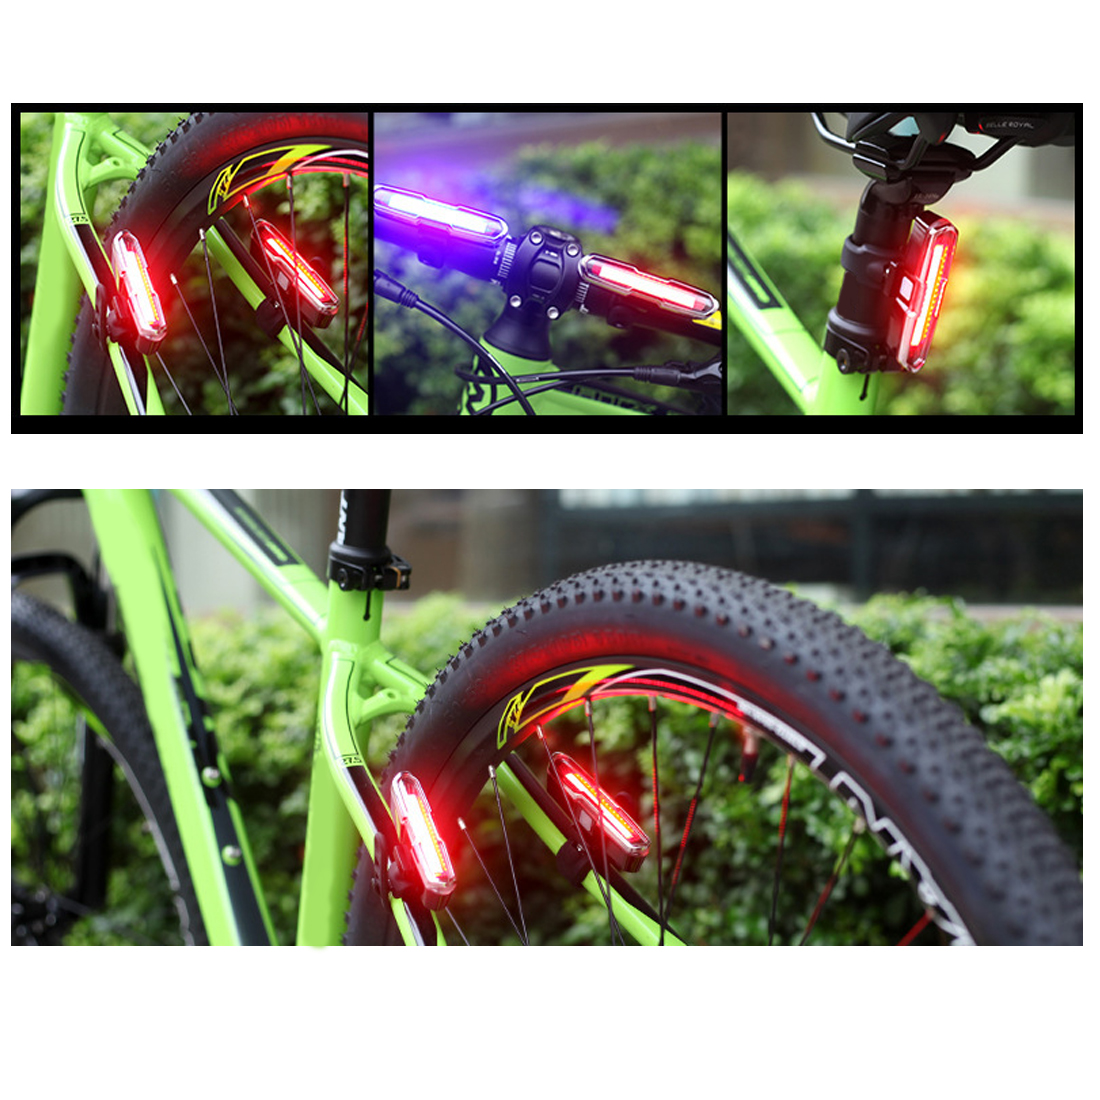 Tonewan new Dual Color Red/Blue/White USB Rechargeable Super Bright COB LED Bicycle Bike Cycling Rear Tail Light Lamp 6000lumens bike bicycle light cree xml t6 led flashlight torch mount holder warning rear flash light